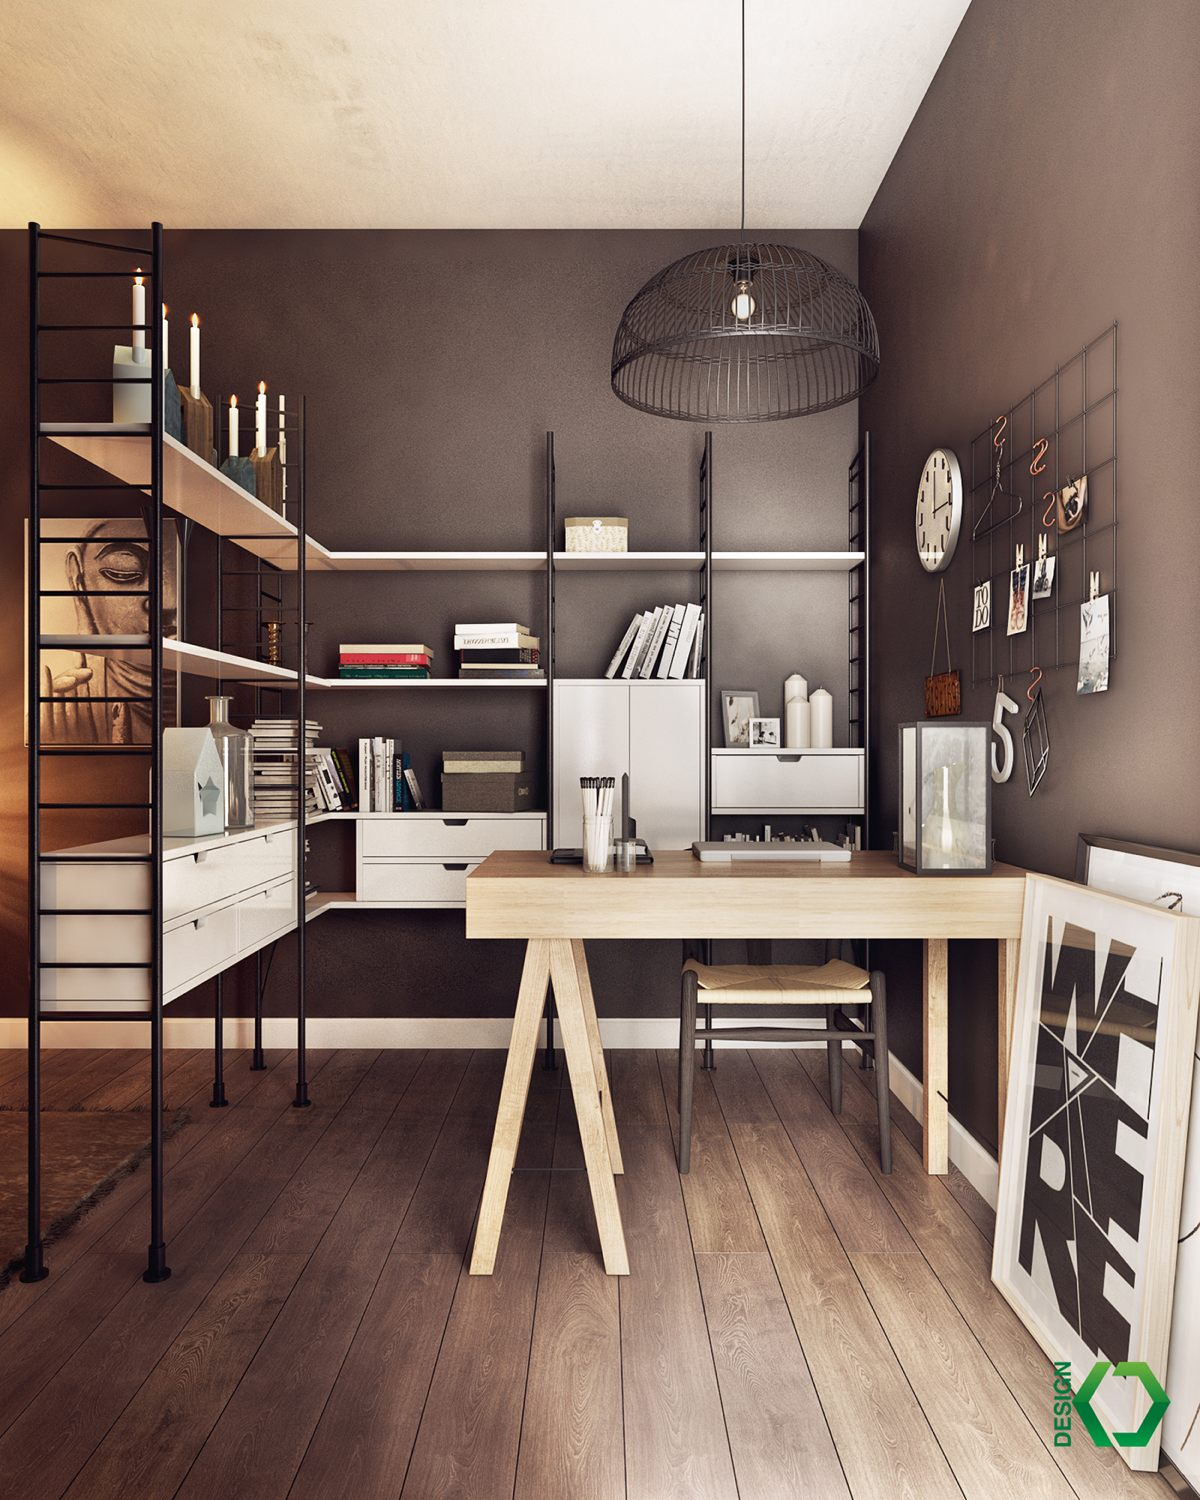 Home Office Room Design: Decordemon: A Charming Industrial Apartment Inspired By